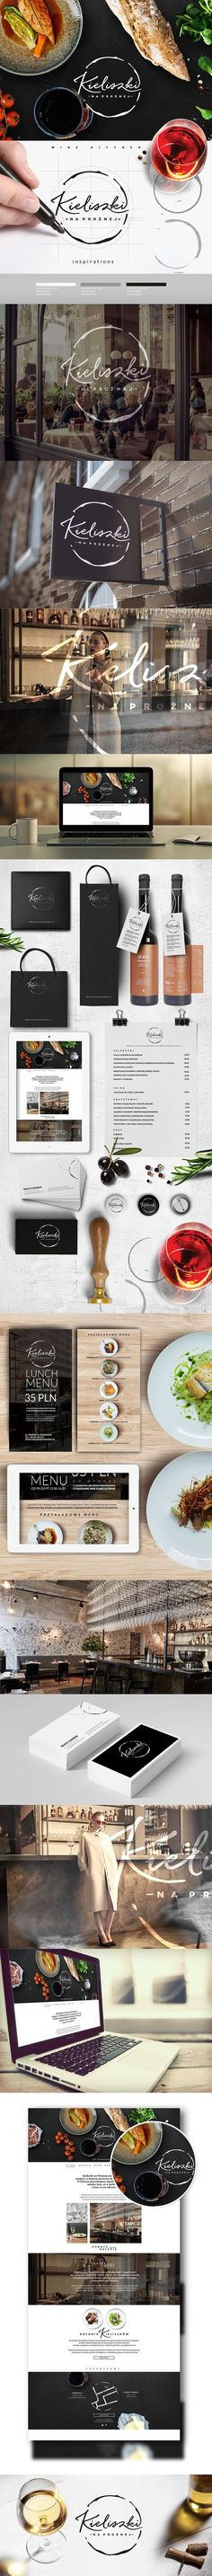 Kieliszki - restaurant on Behance: